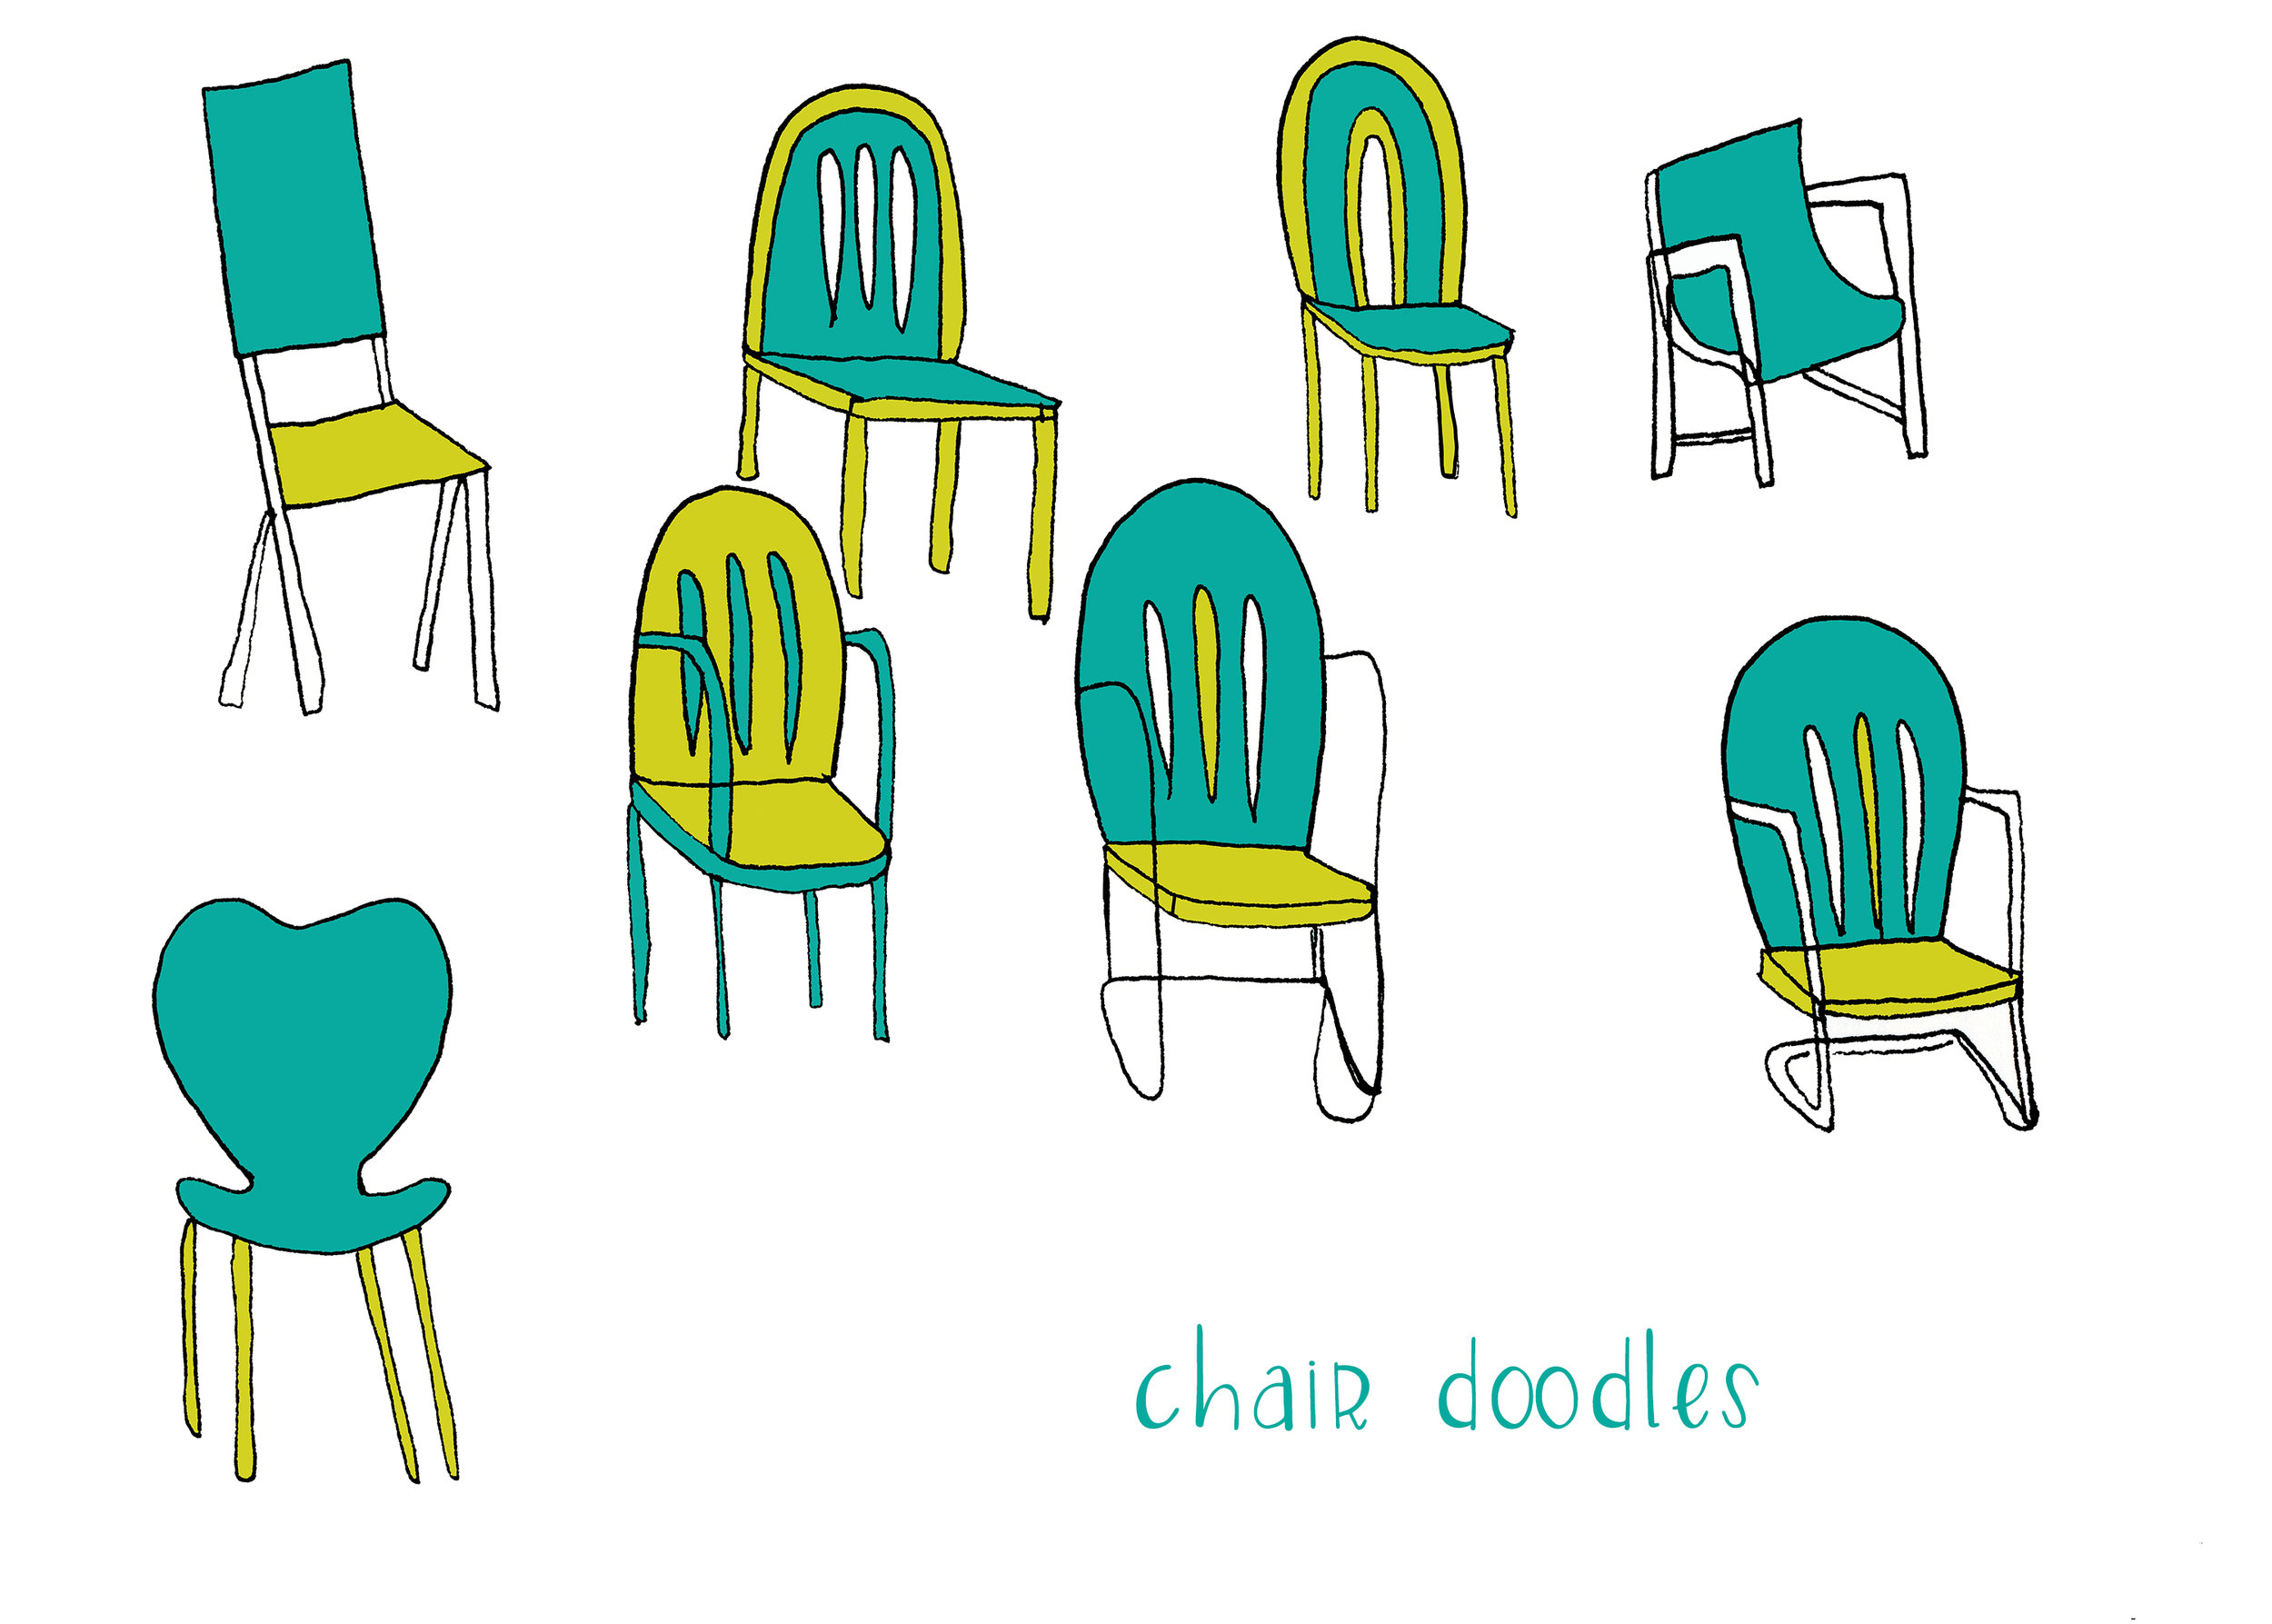 Chairs_003_web.jpg